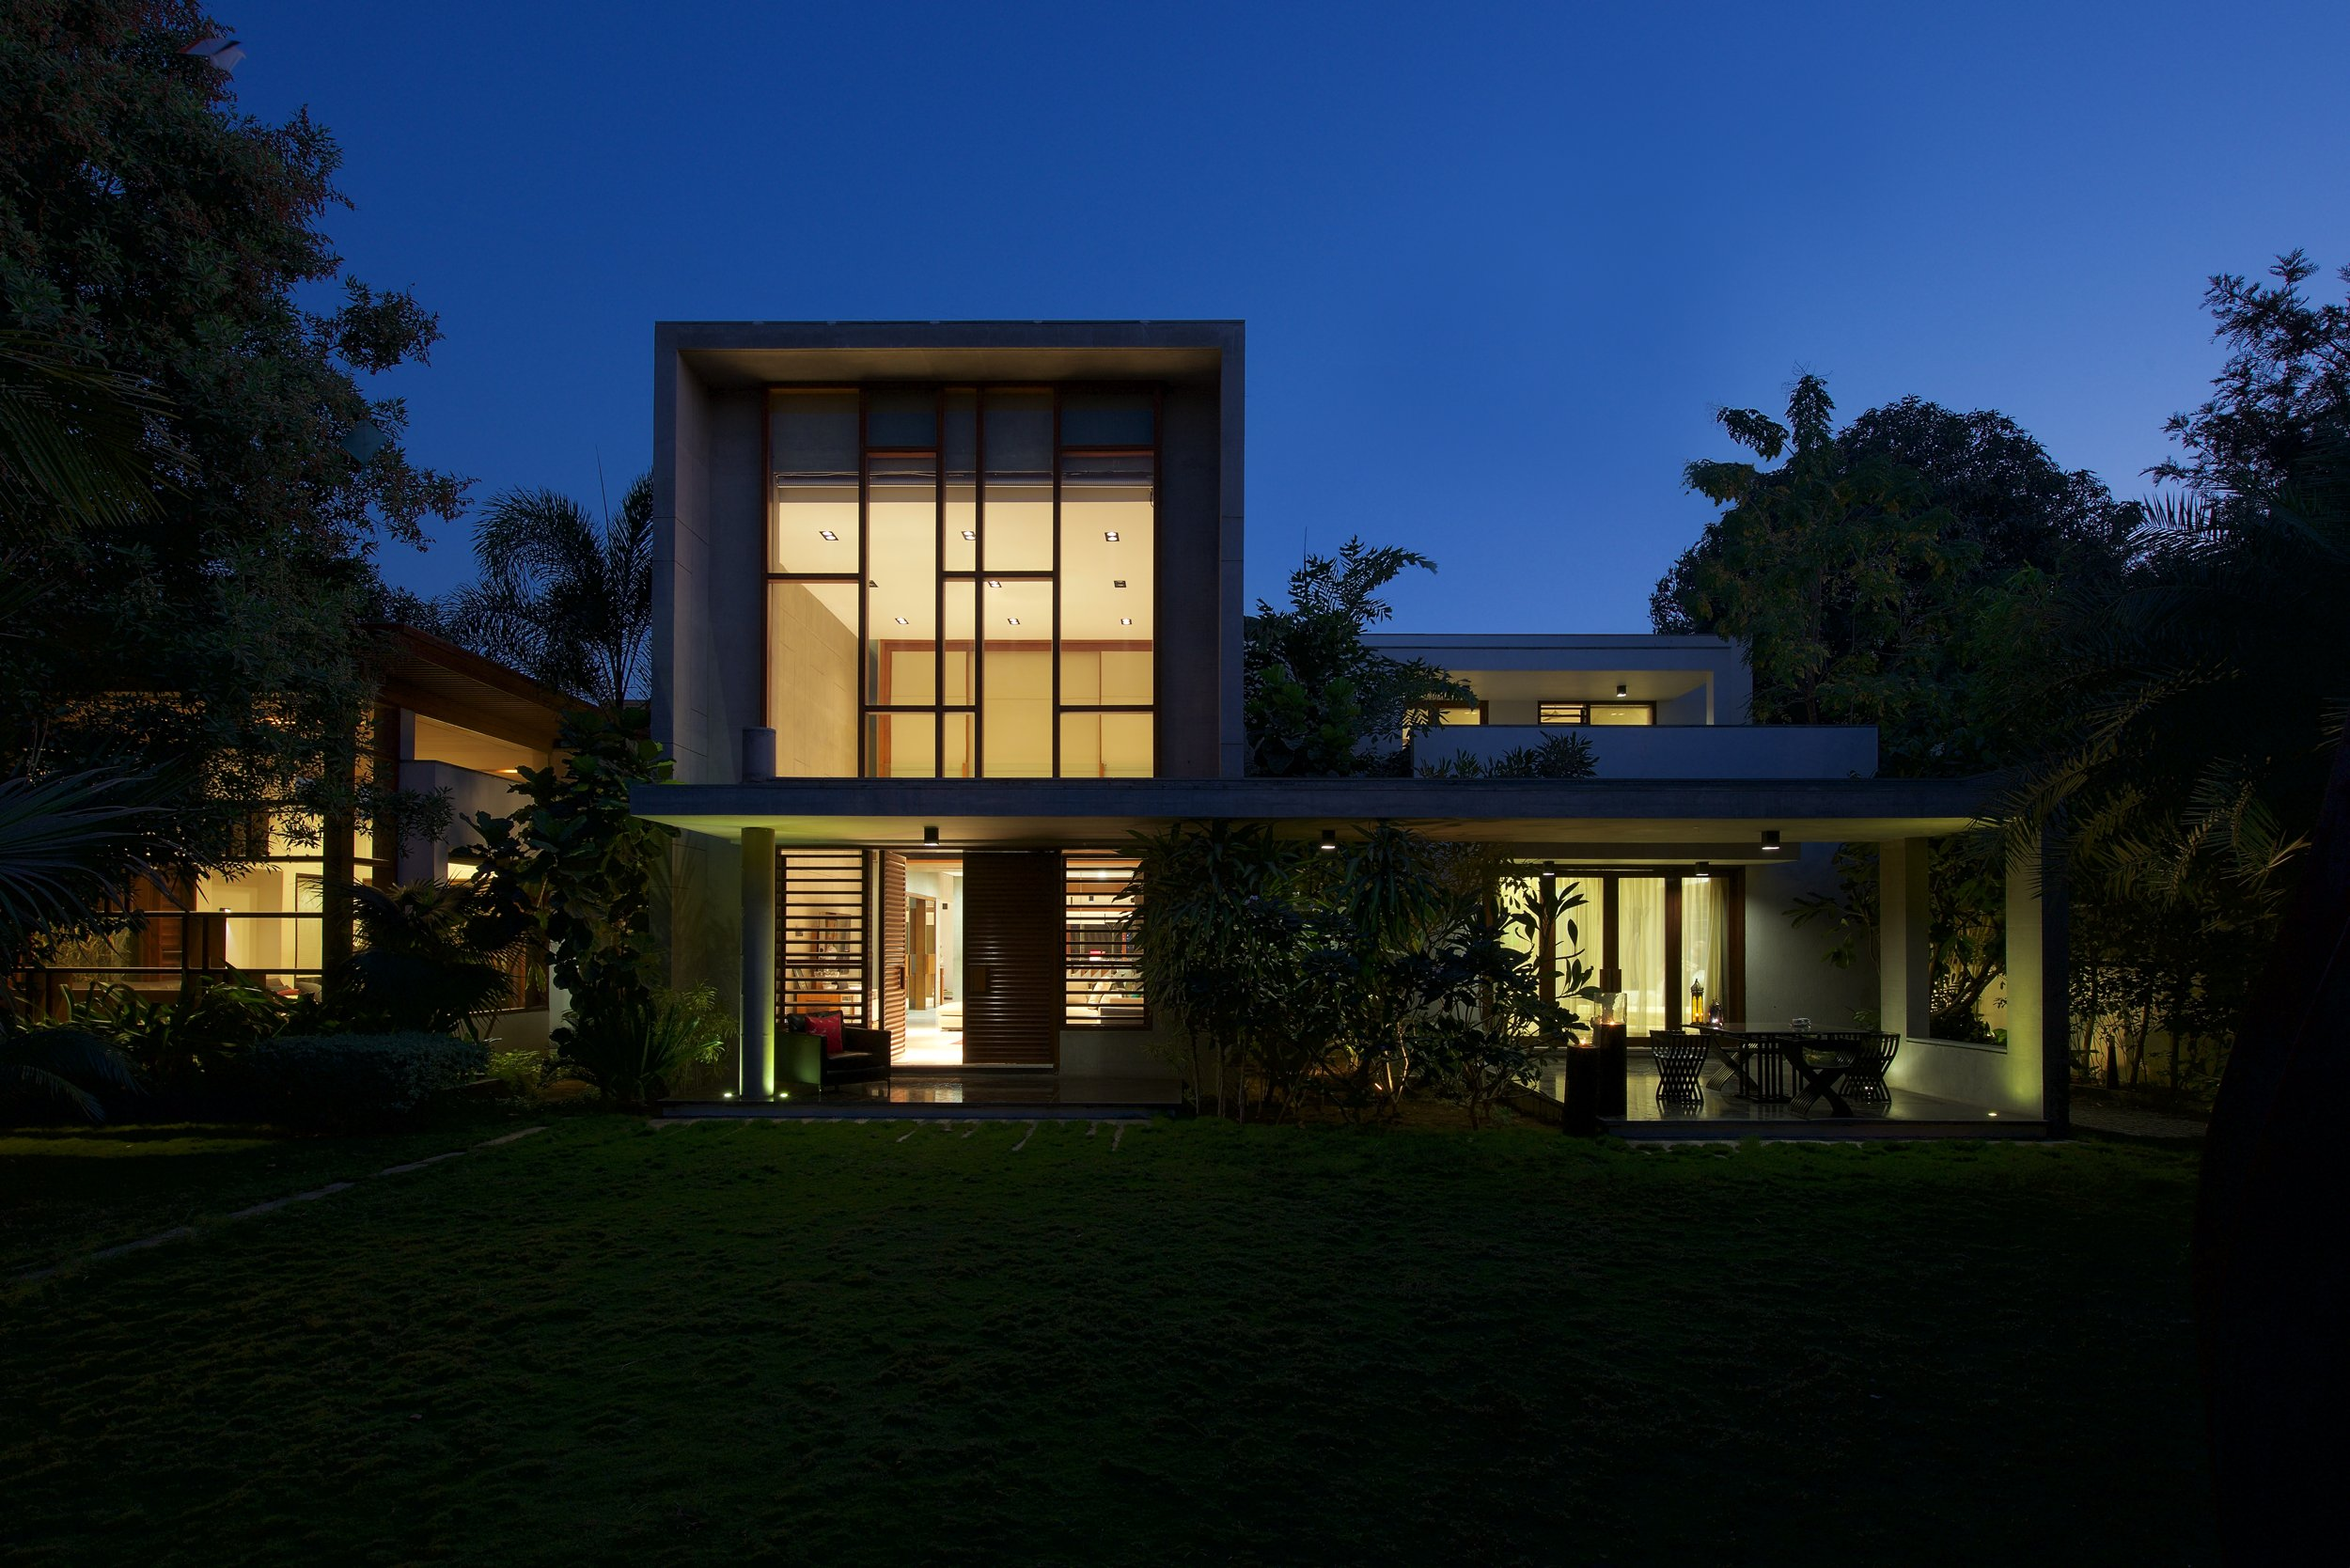 The Axis House